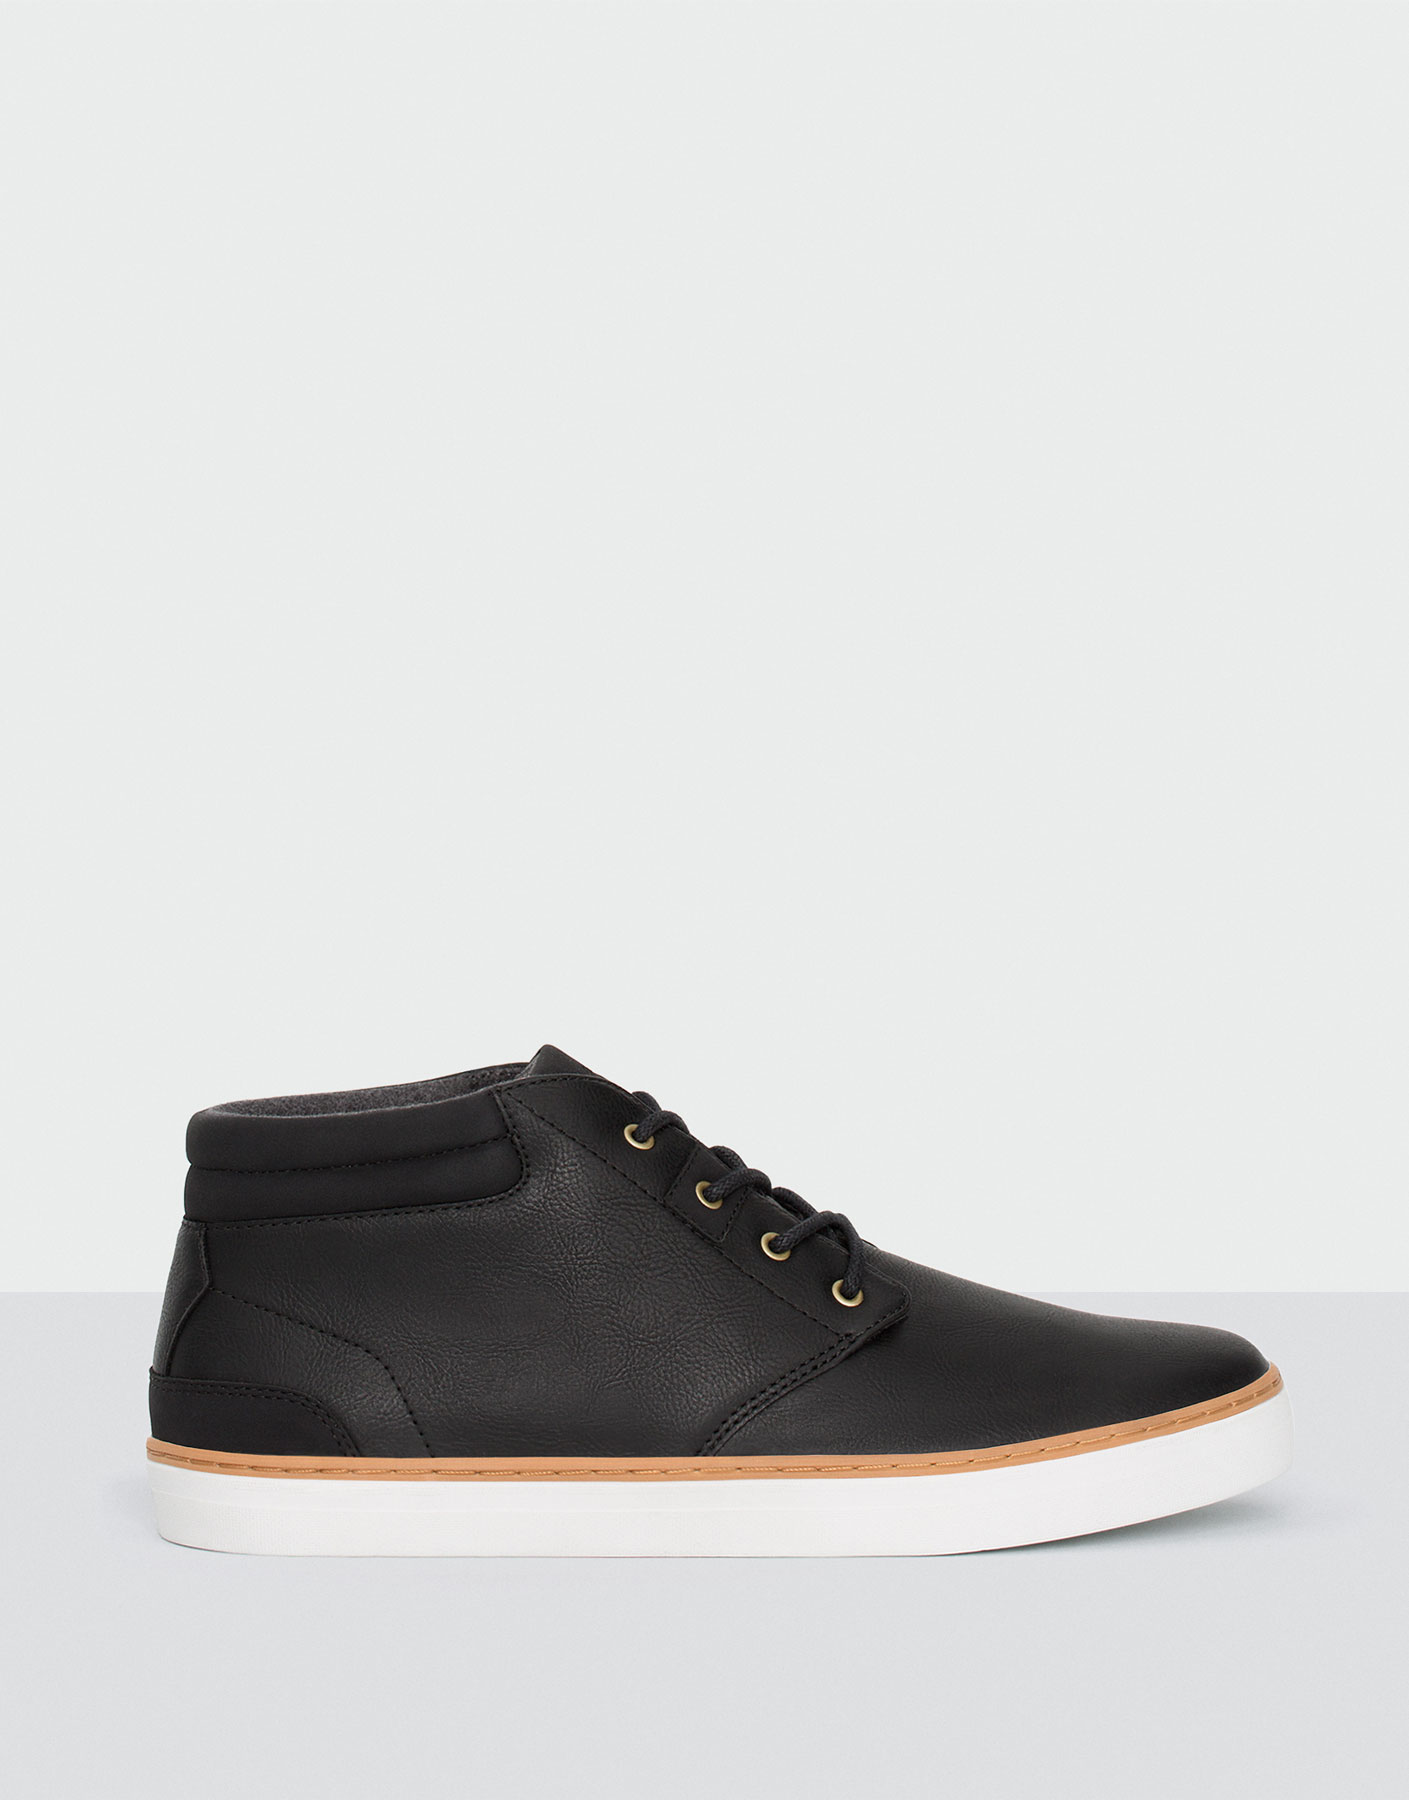 Felt lined ankle boots